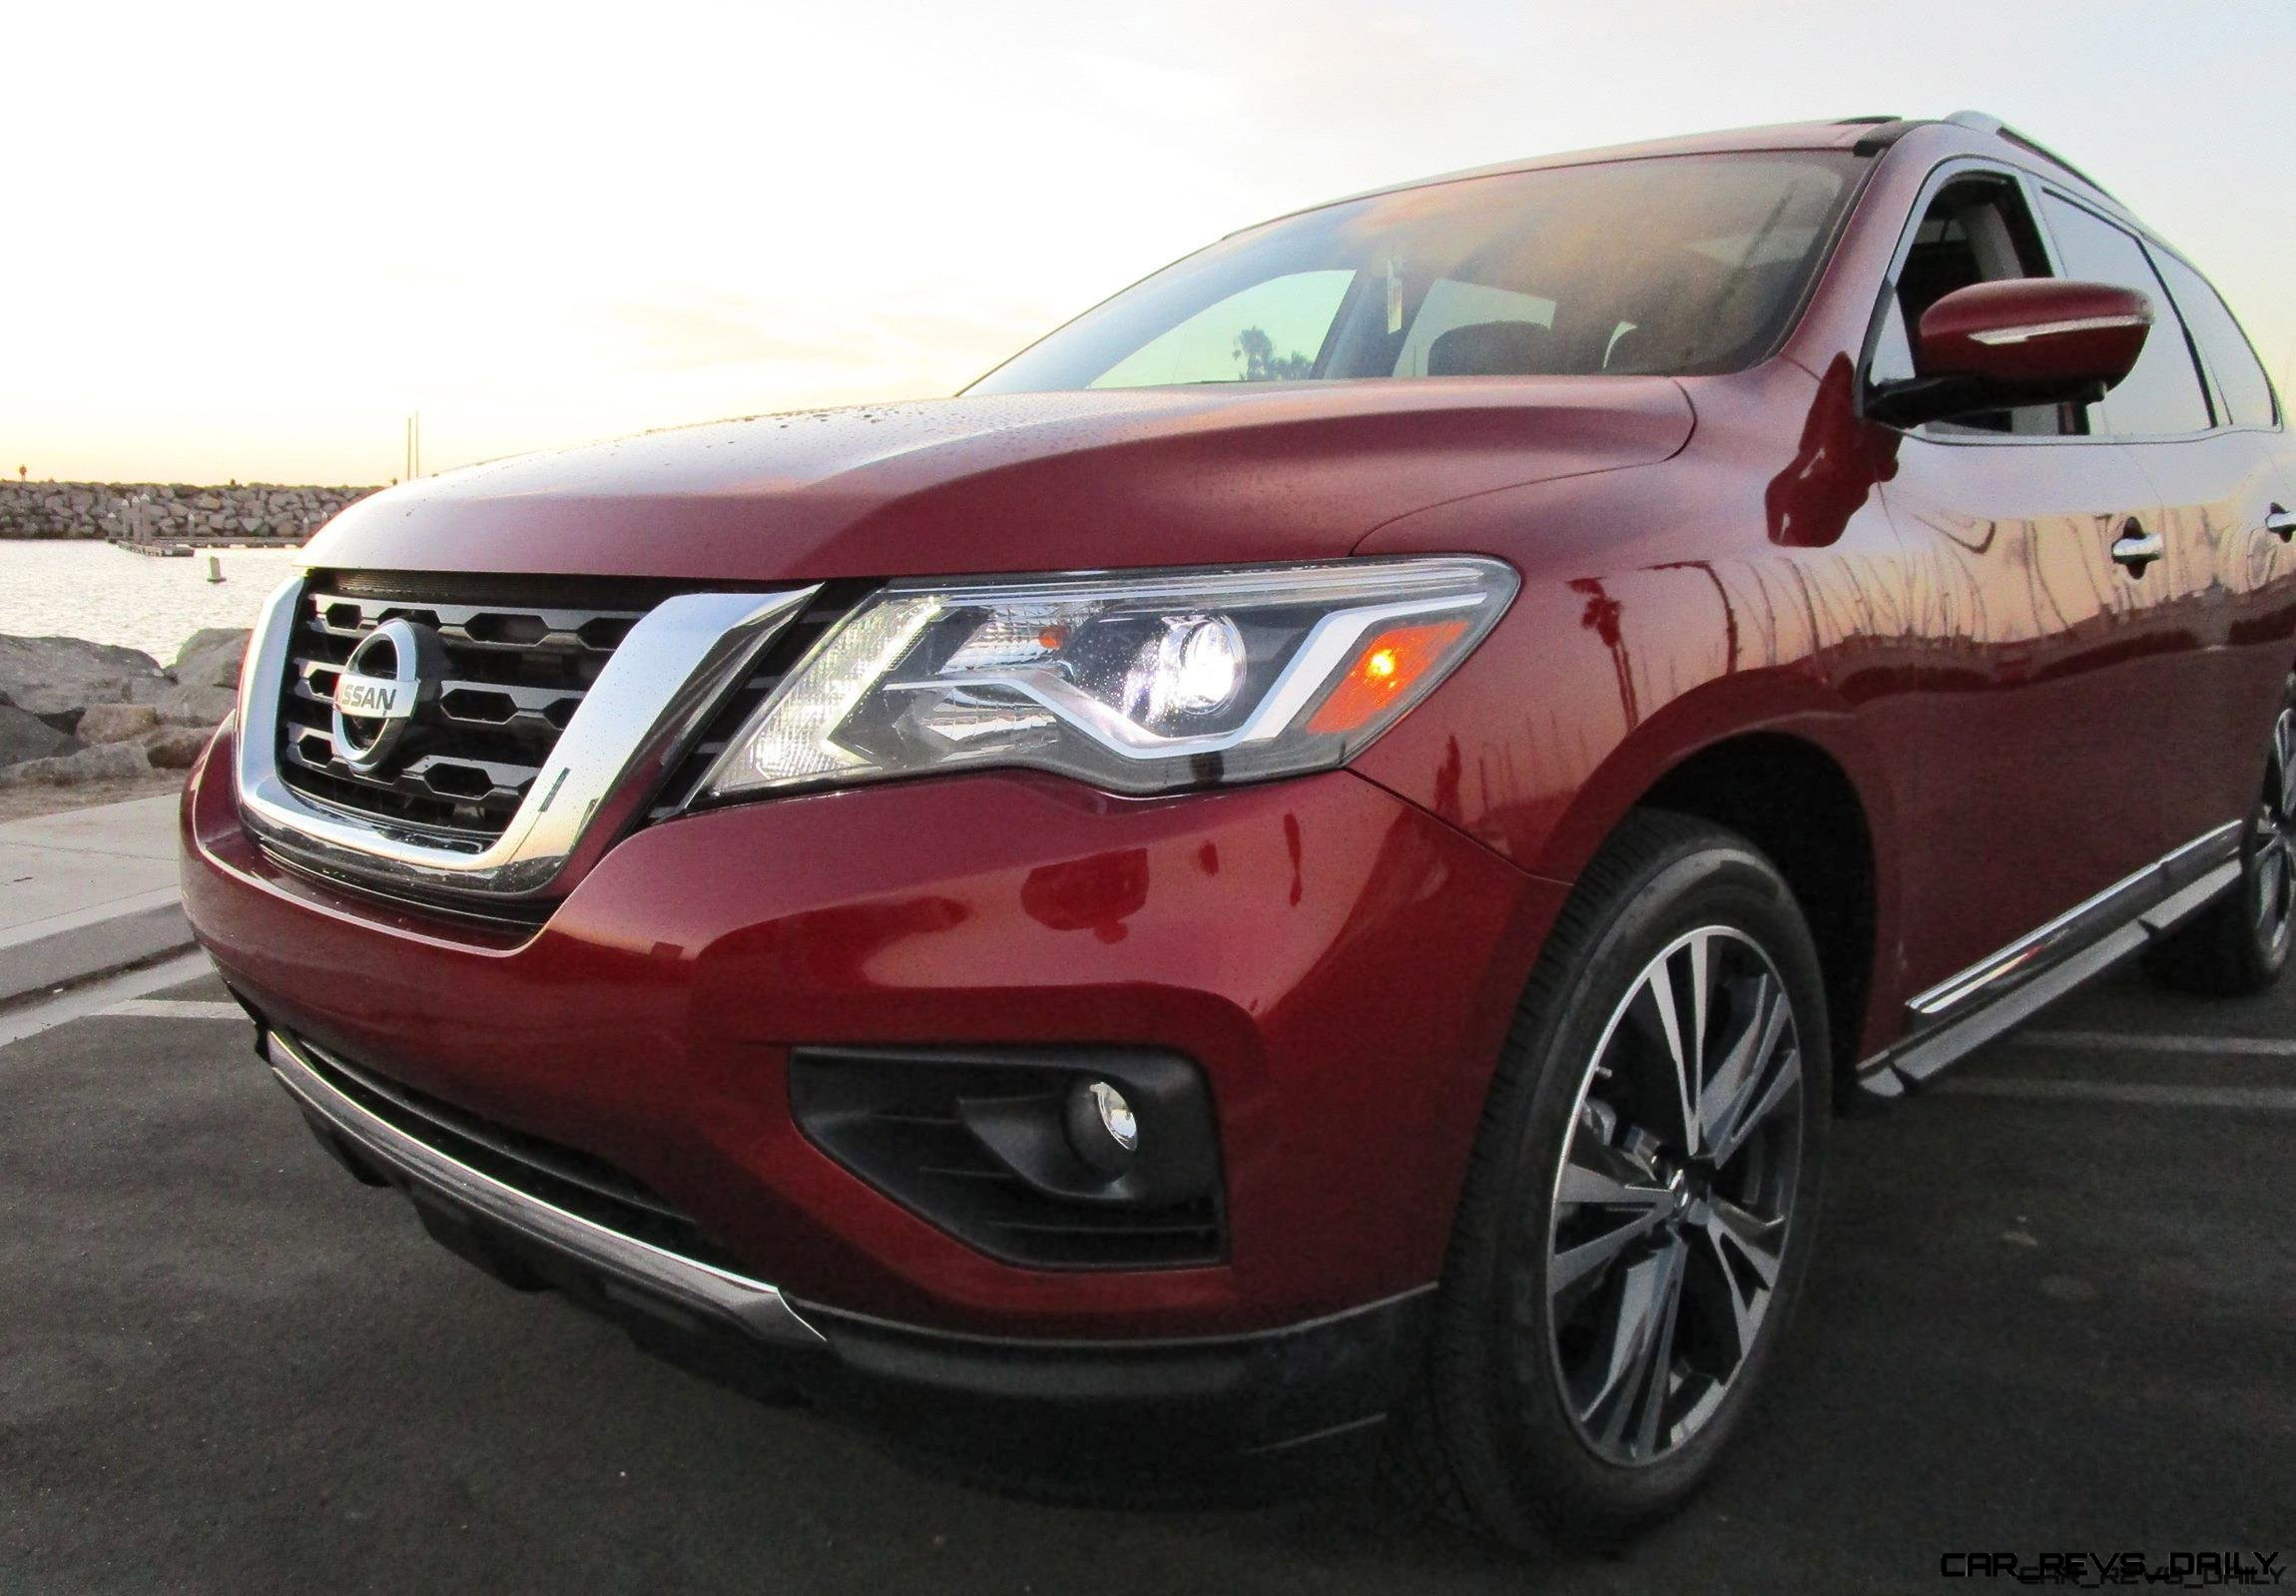 2017 nissan pathfinder platinum awd road test review by ben lewis. Black Bedroom Furniture Sets. Home Design Ideas